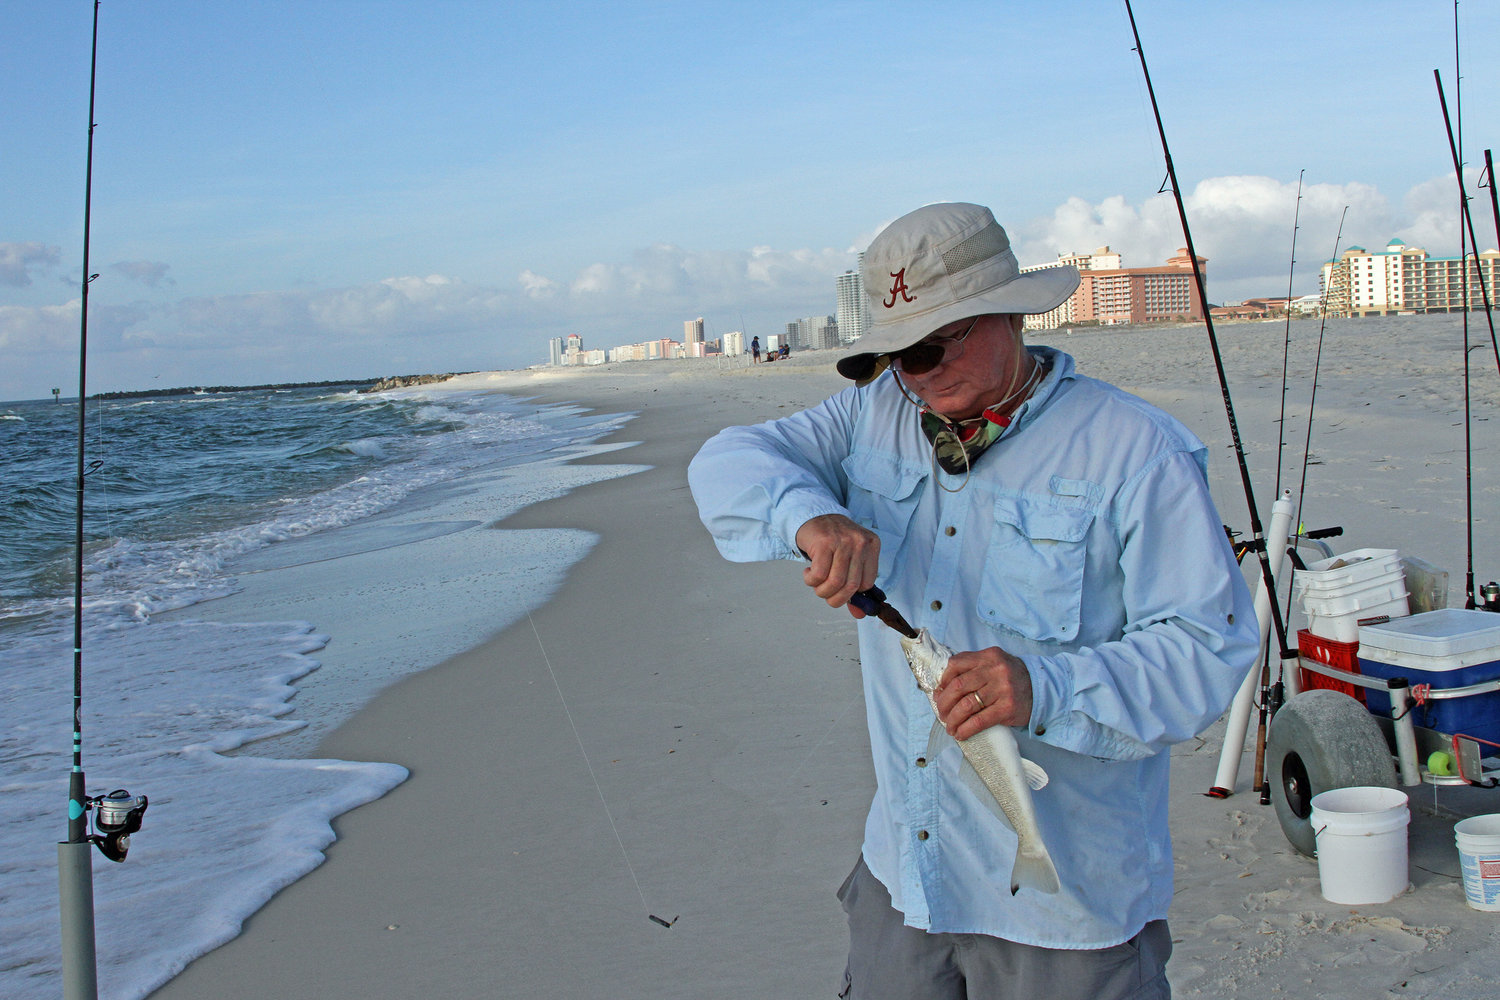 Thornton uses a suction pump to extract ghost shrimp from the surf to catch a variety of fish species.